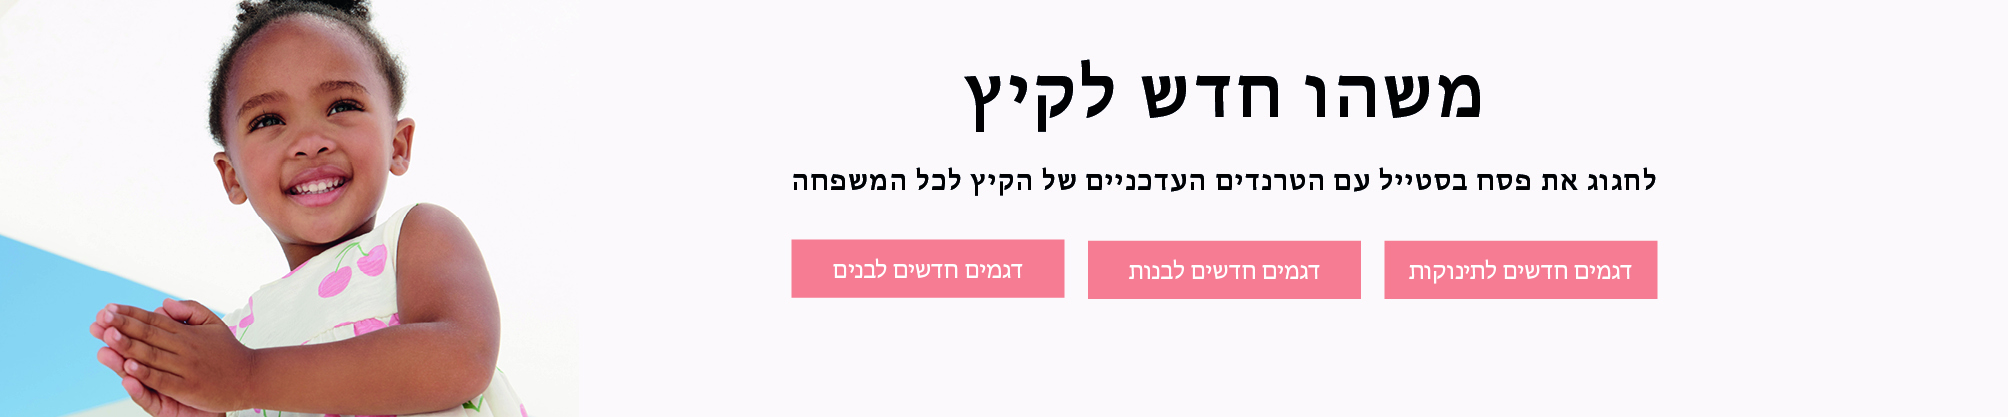 New in HP_Banners-IS_hebrew